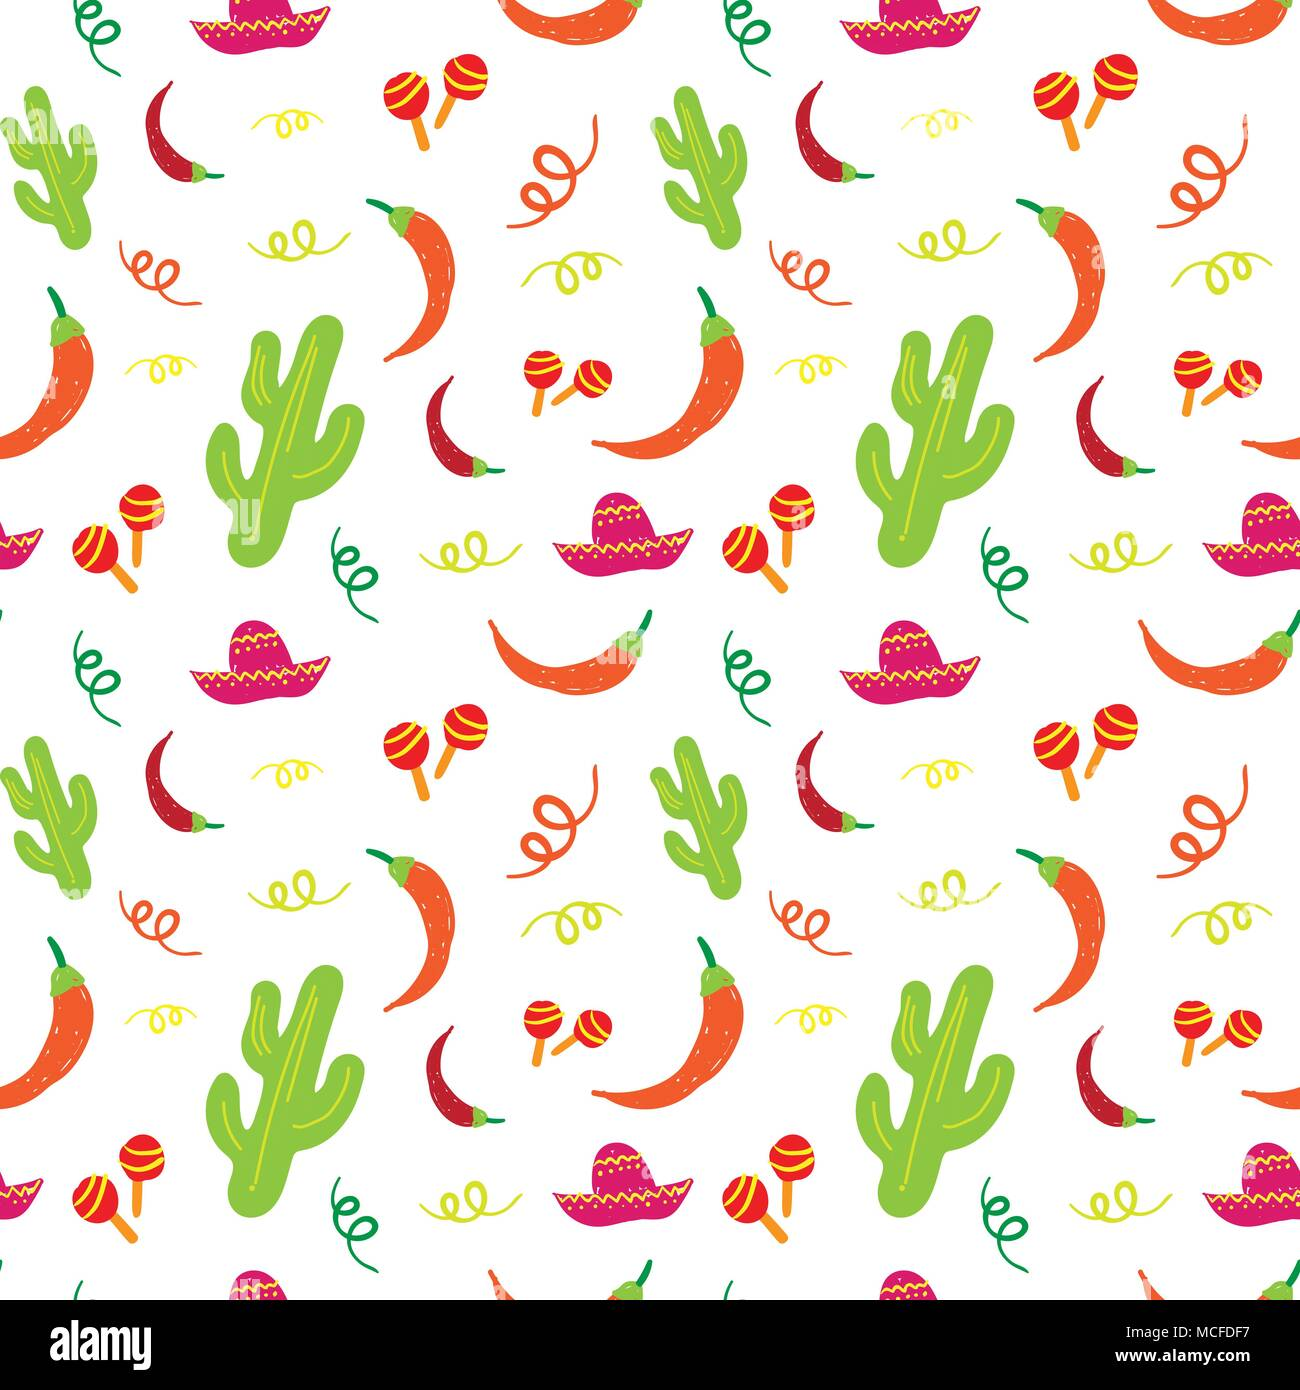 Cinco De Mayo Mexican Holiday Seamless Pattern With Cactus 4b1527a0822